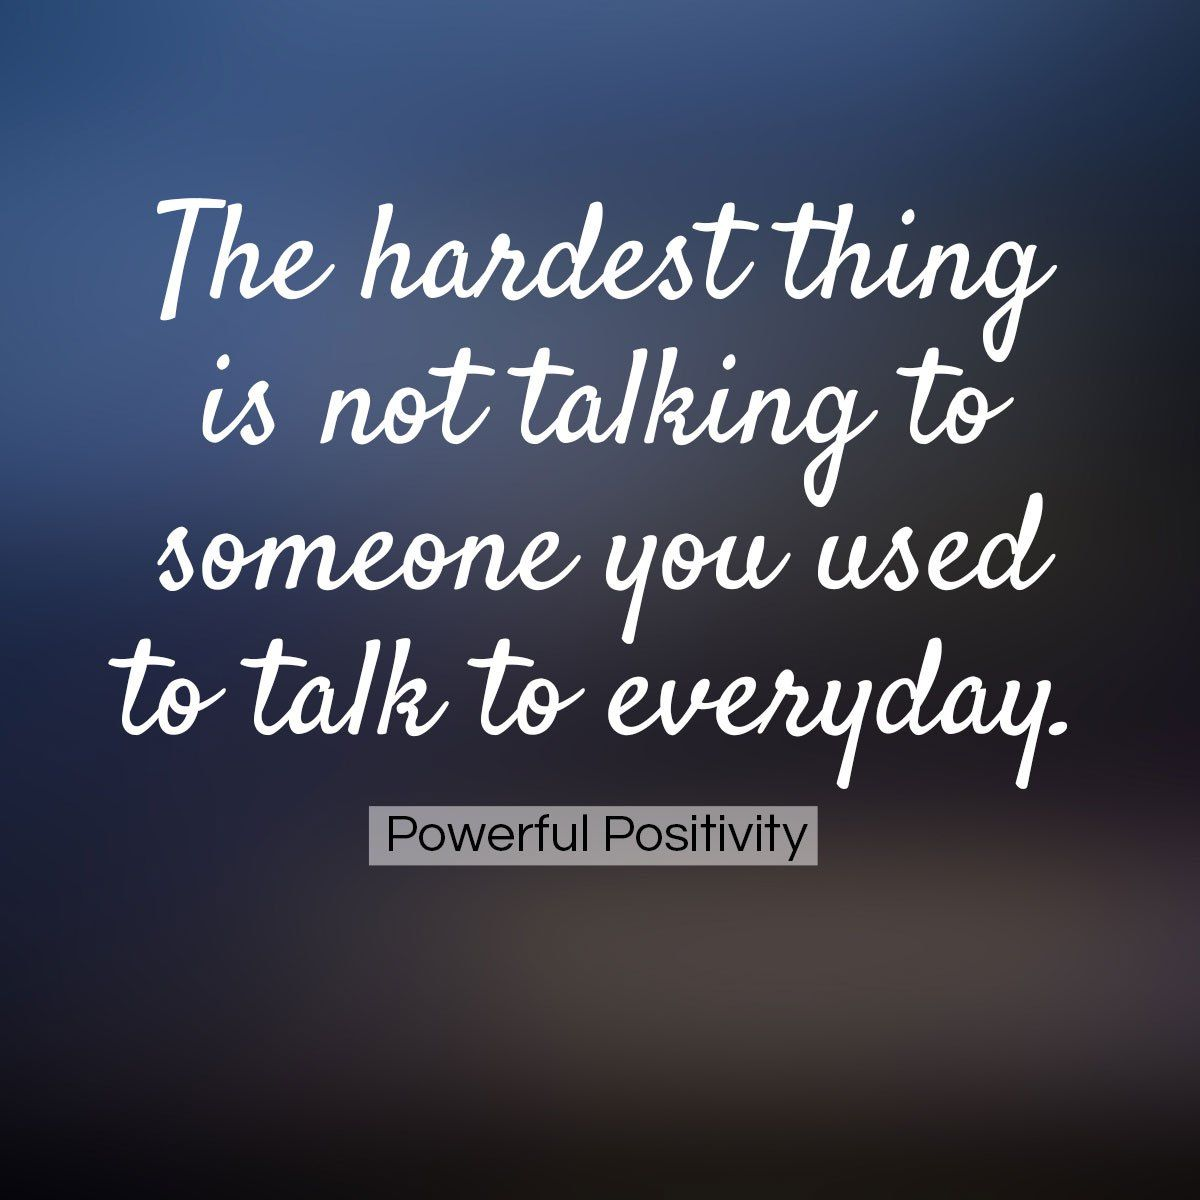 Sad I Miss You Quotes For Friends: The Hardest Thing Is Not Talking To Someone You Used To